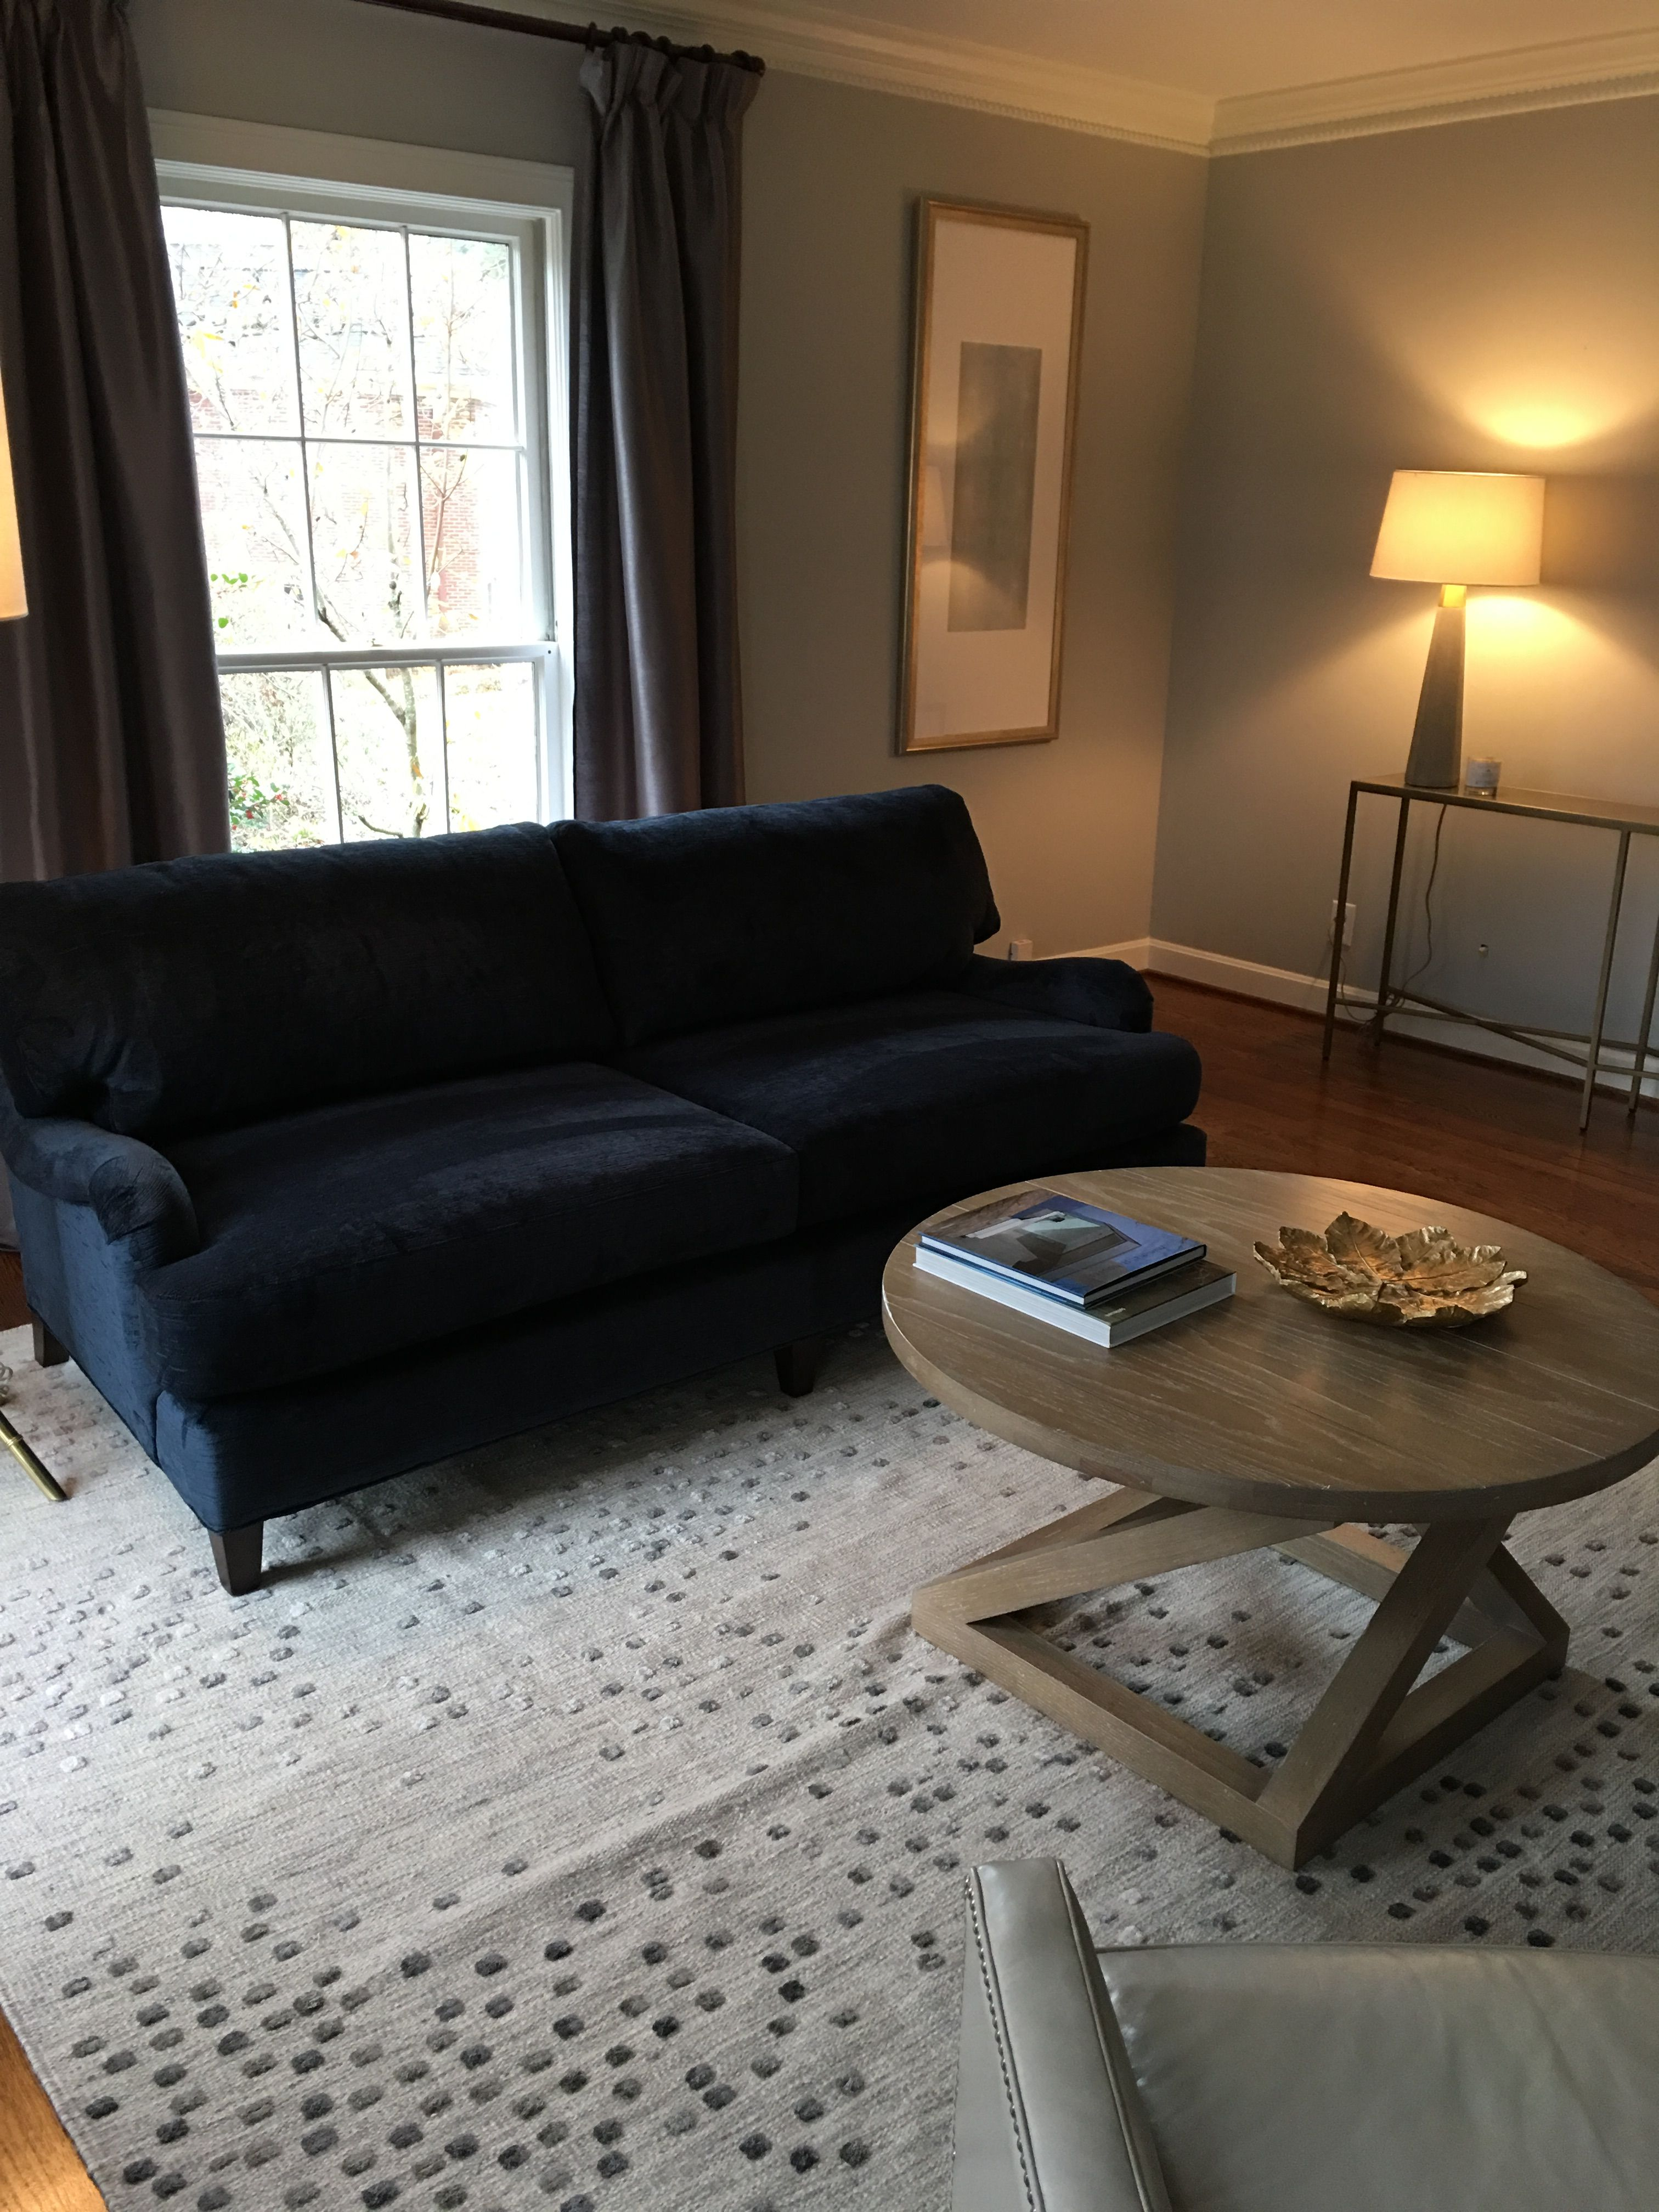 Staging Of A Home With Furniture From Mitchell Gold Bob Williams